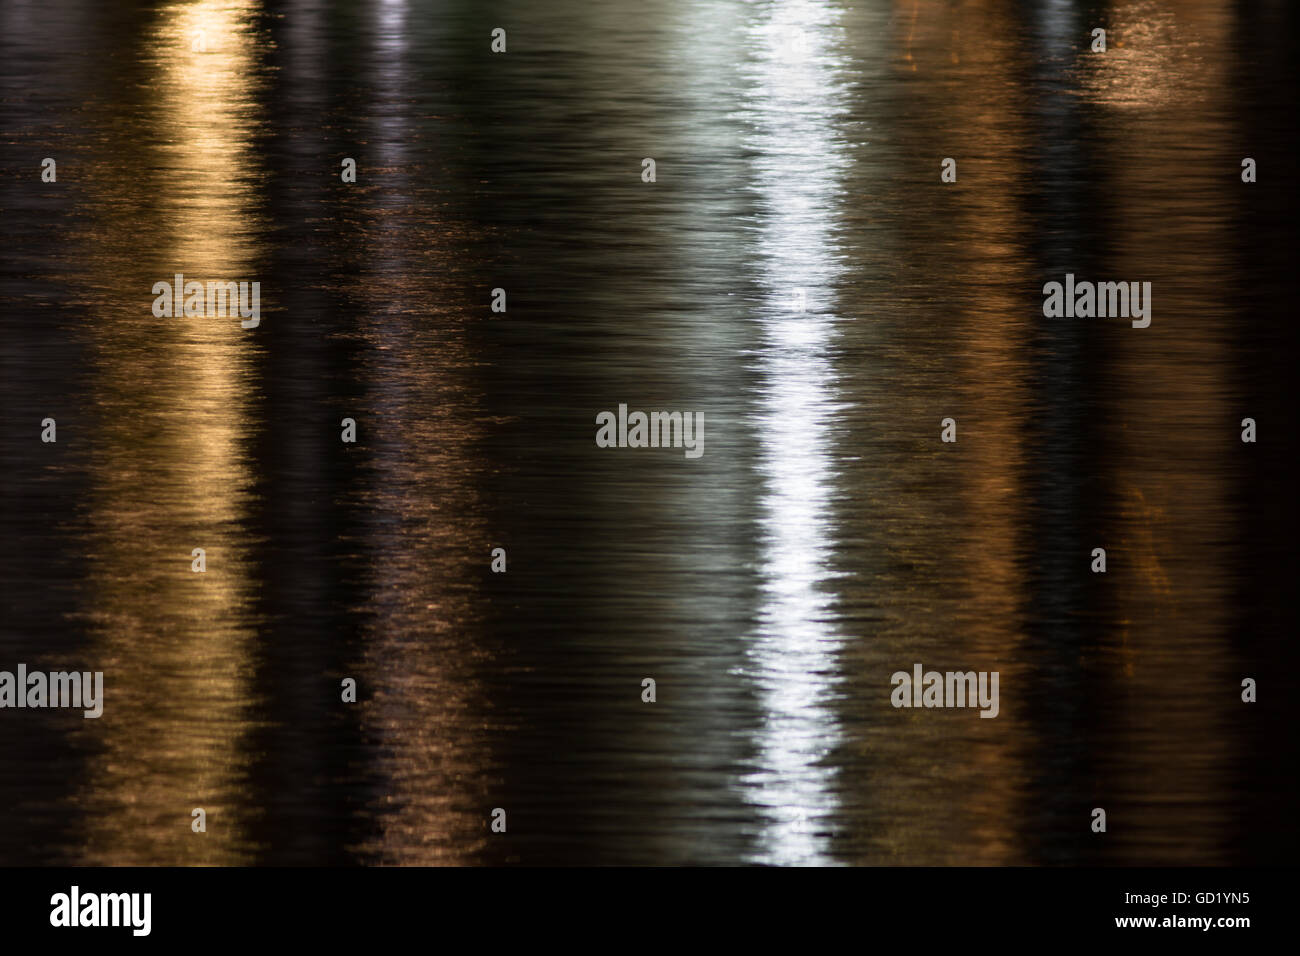 Reflection of yellow and white city lights shimmering on water in yellow and silver at night. - Stock Image